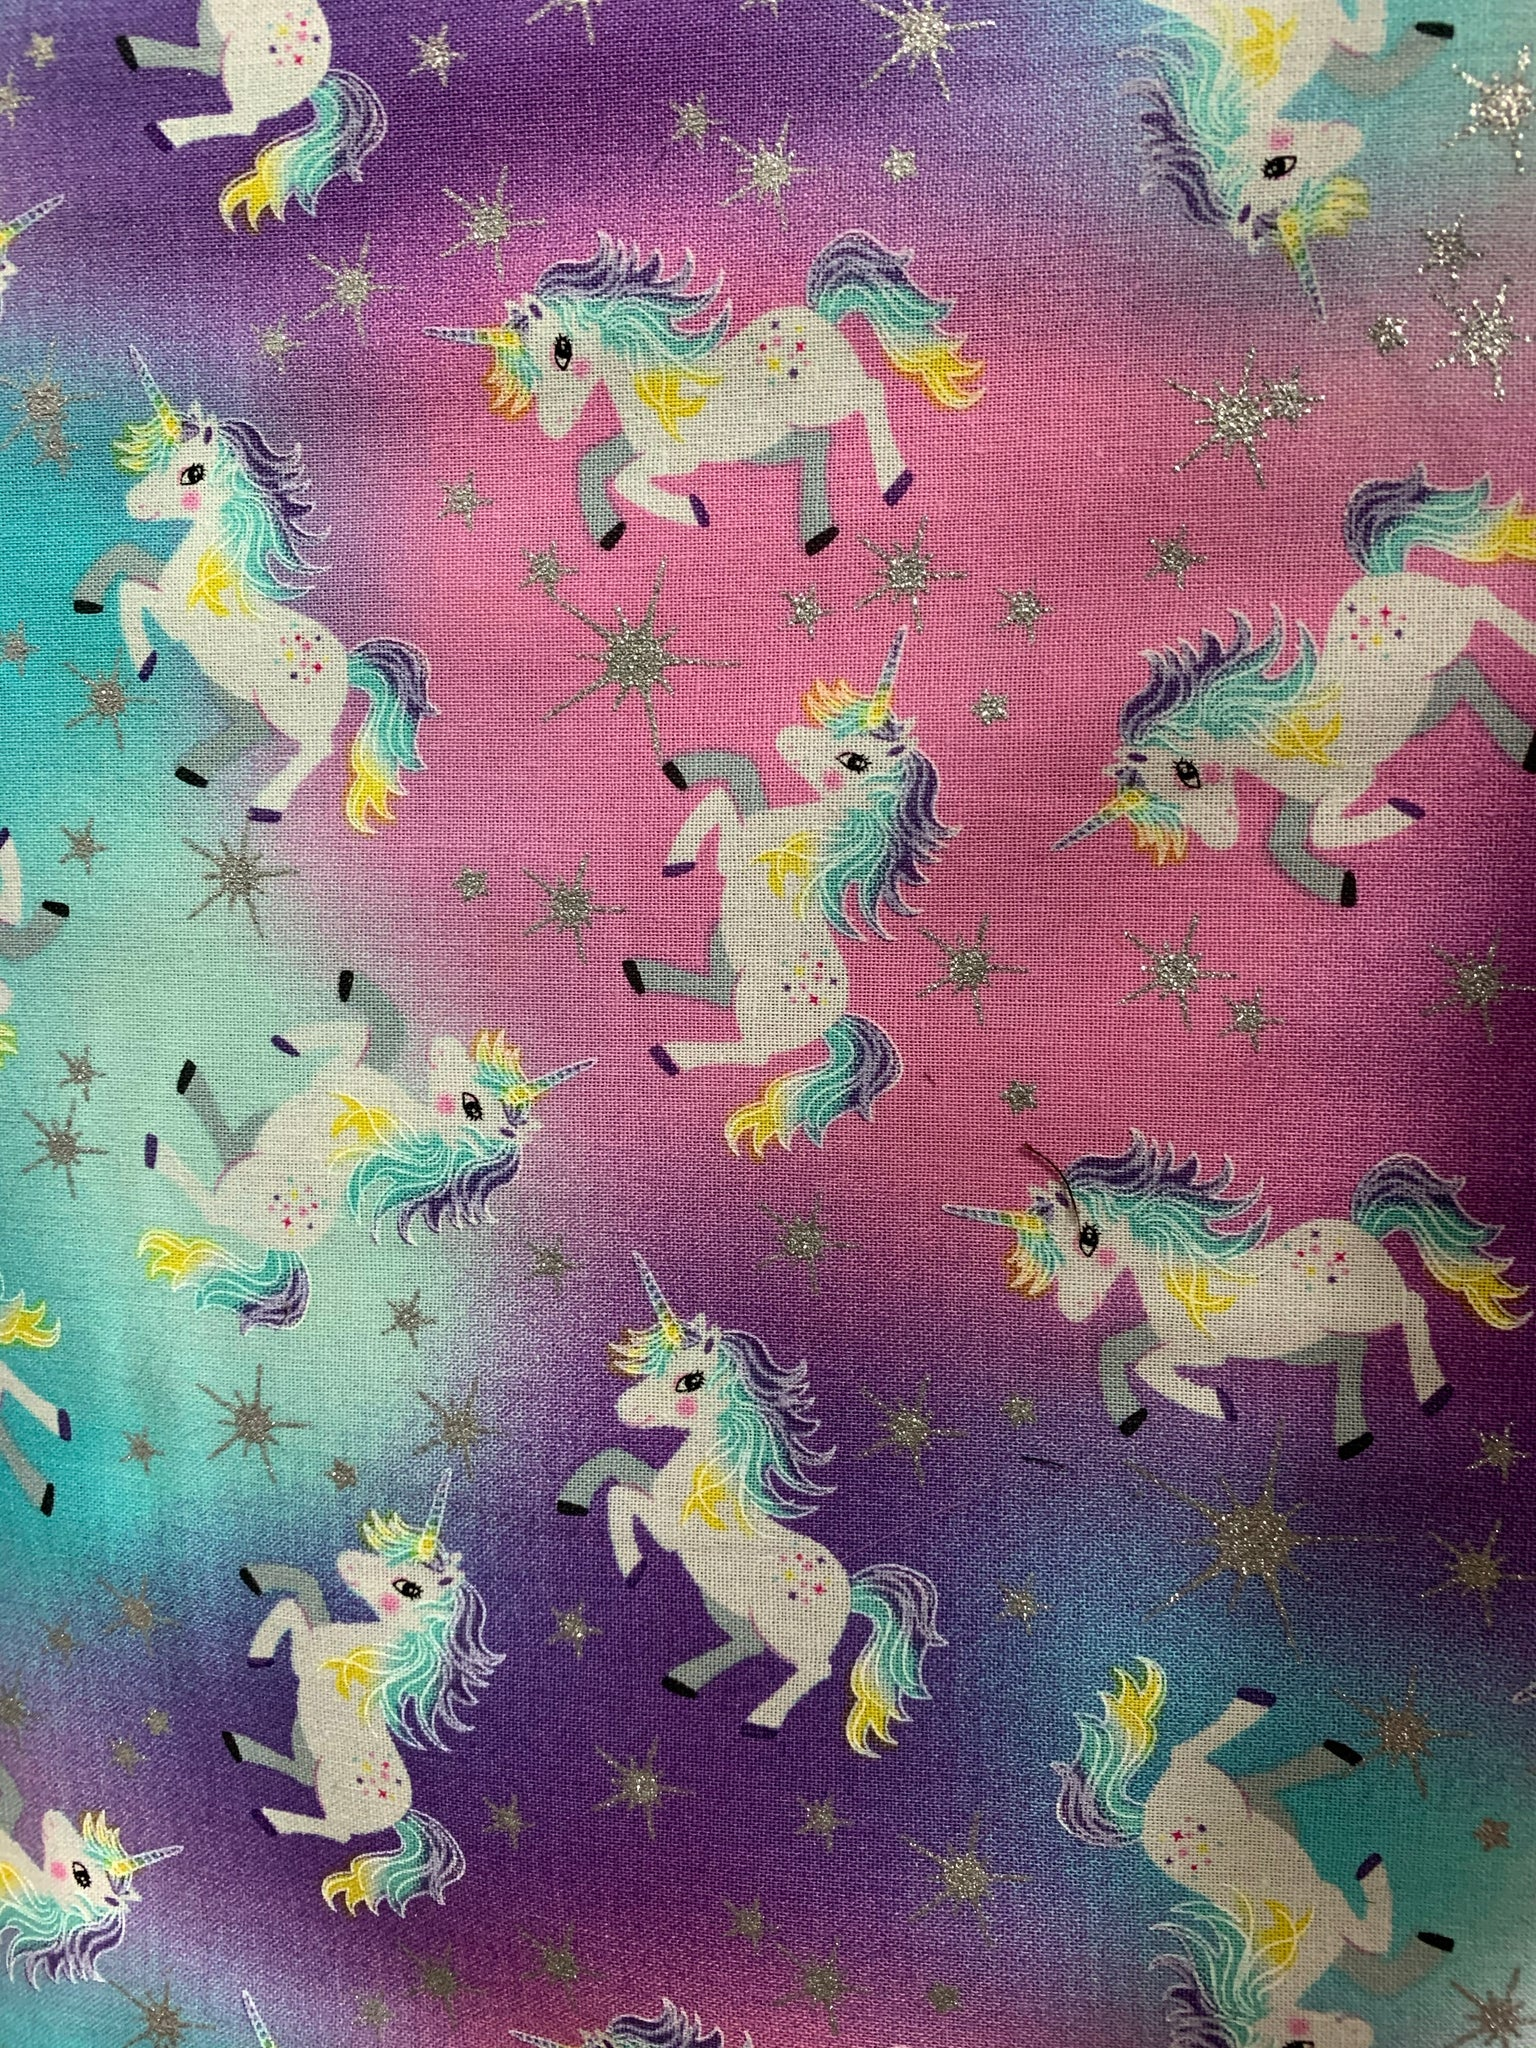 Frosted Unicorn pillowcase